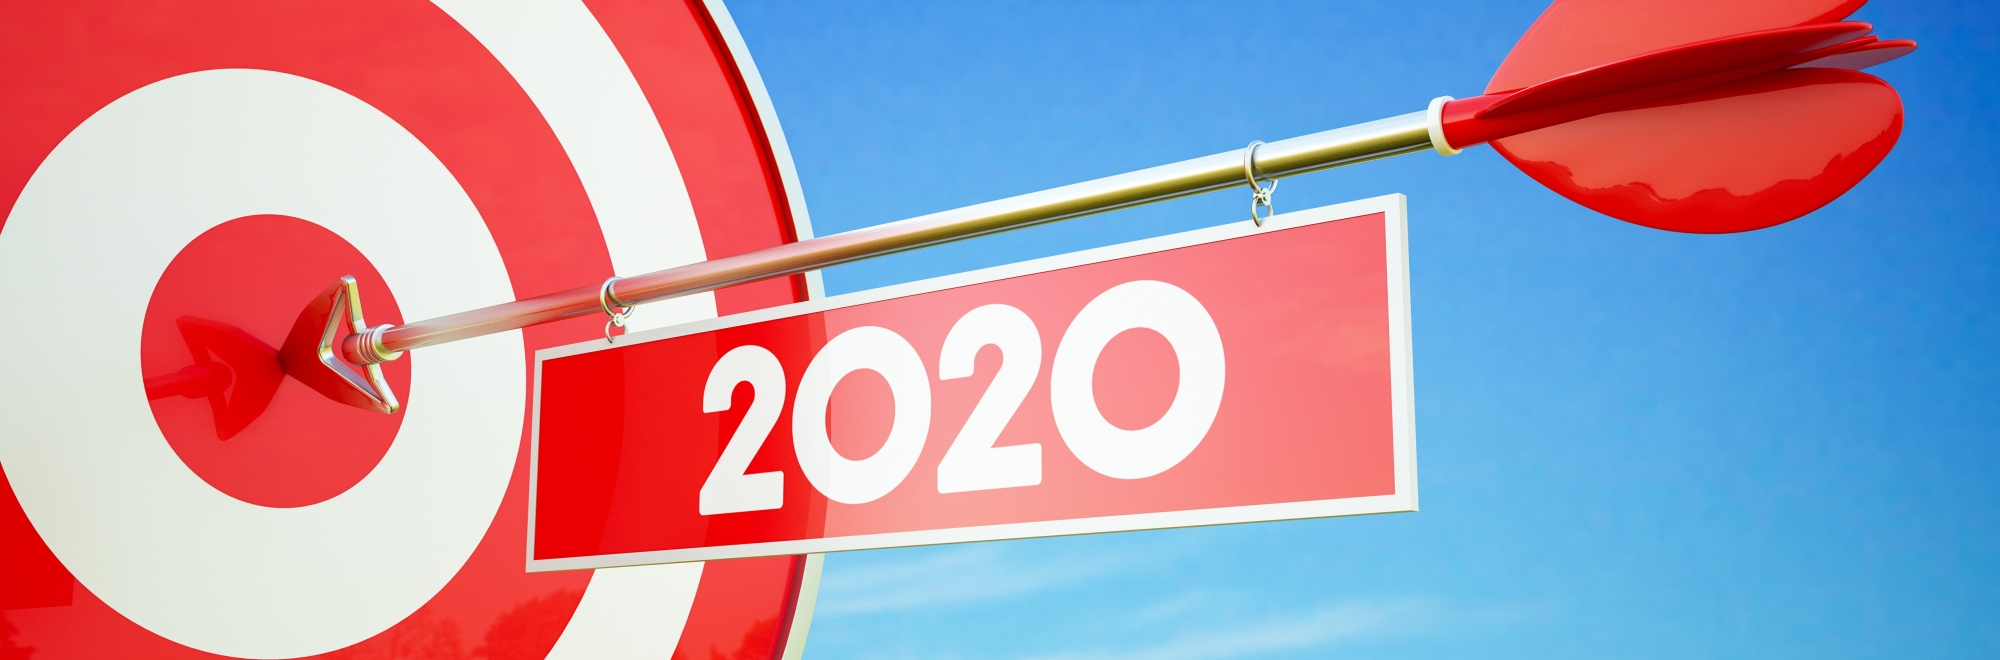 2020 Vision – A 10 point manifesto for the evolution of PR by Pete Mountstevens, chief creative officer at Taylor Herring